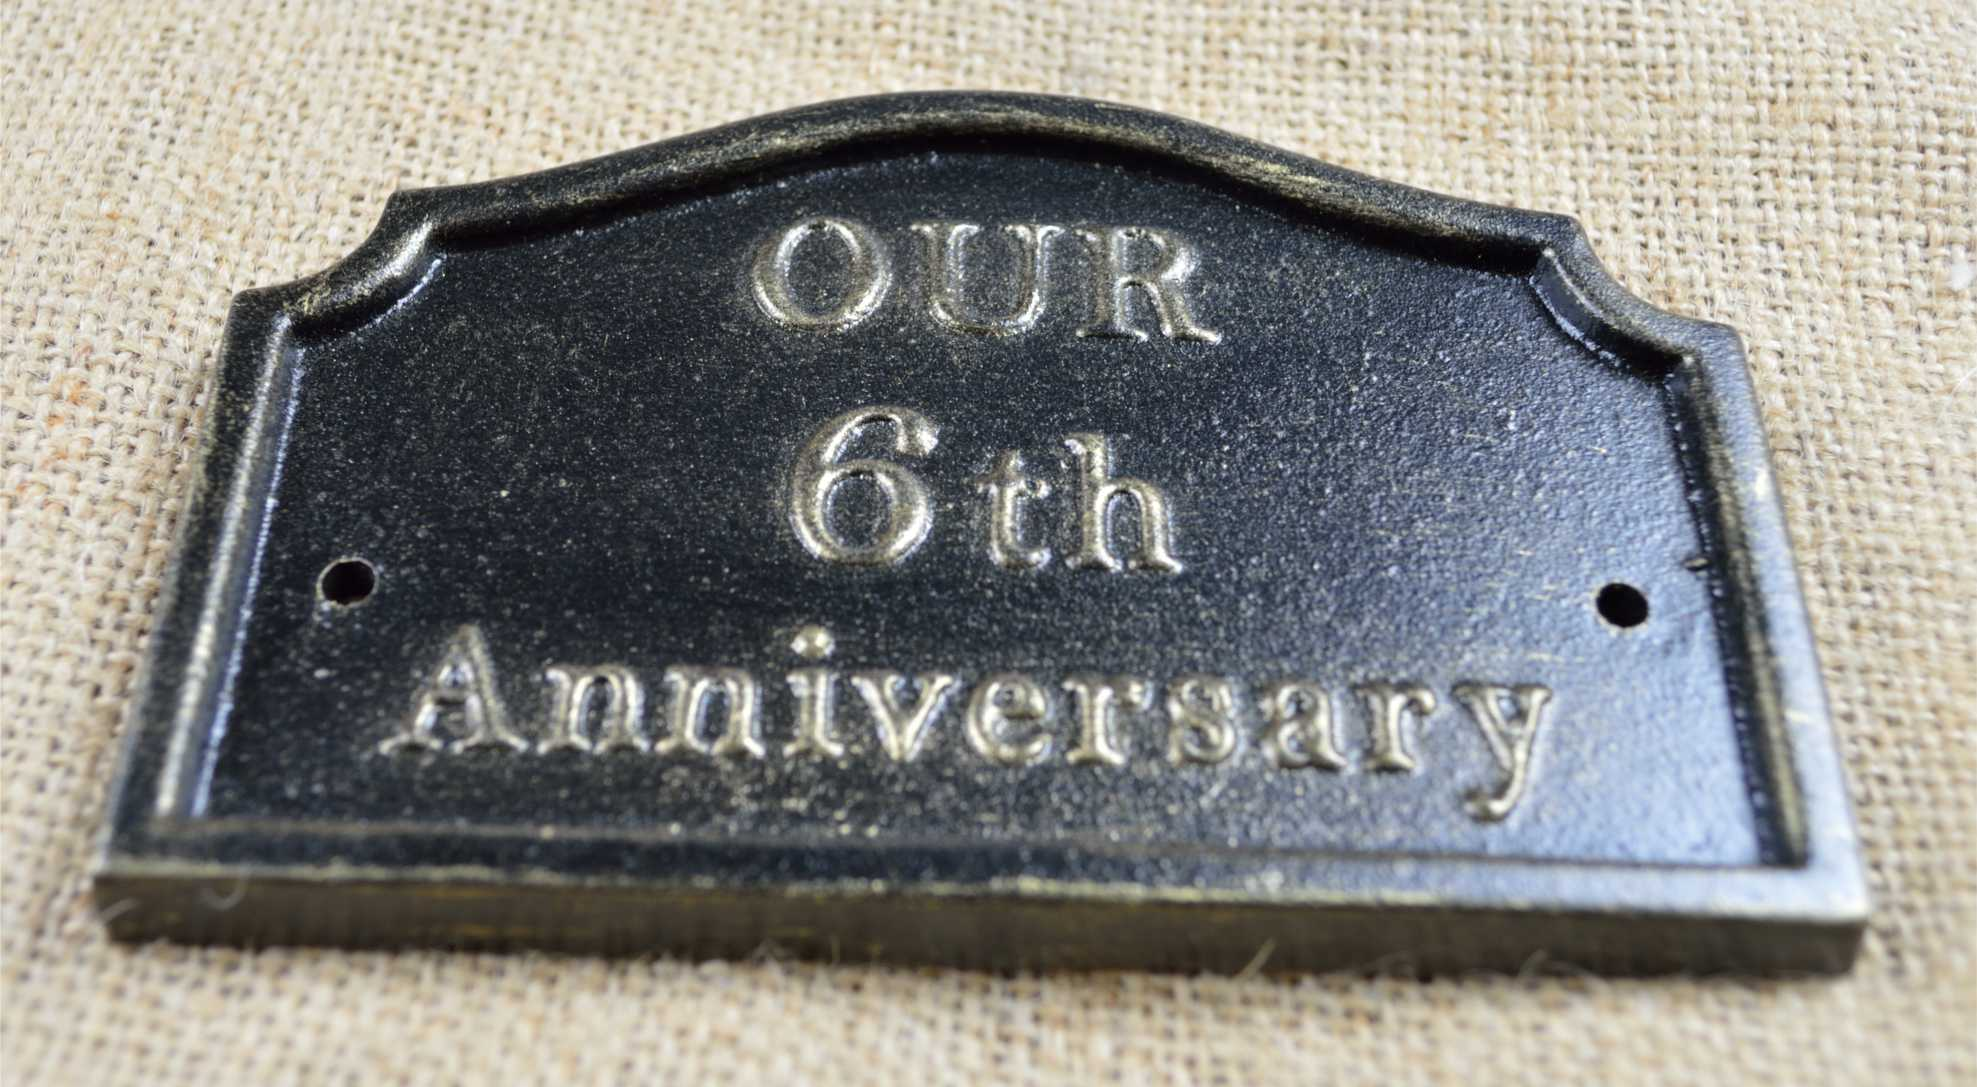 Iron Gifts For 6th Wedding Anniversary: 6th Wedding Anniversary Plaque, Solid Cast Iron Gifts By